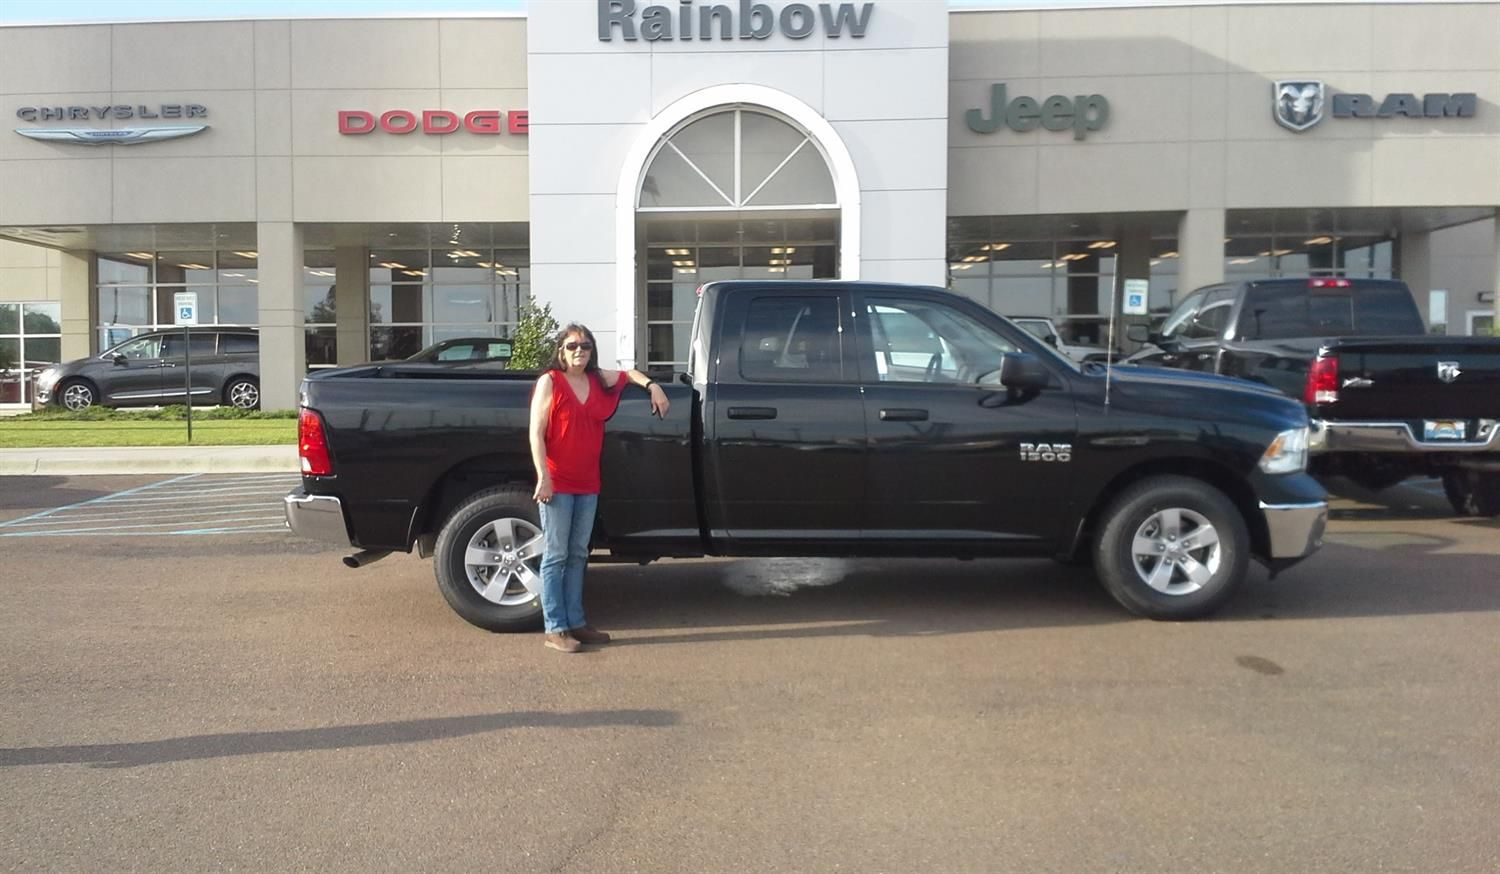 Perfect Thomasu0027s New 2018 RAM 1500! Congratulations And Best Wishes From Rainbow  Chrysler Dodge Jeep Ram